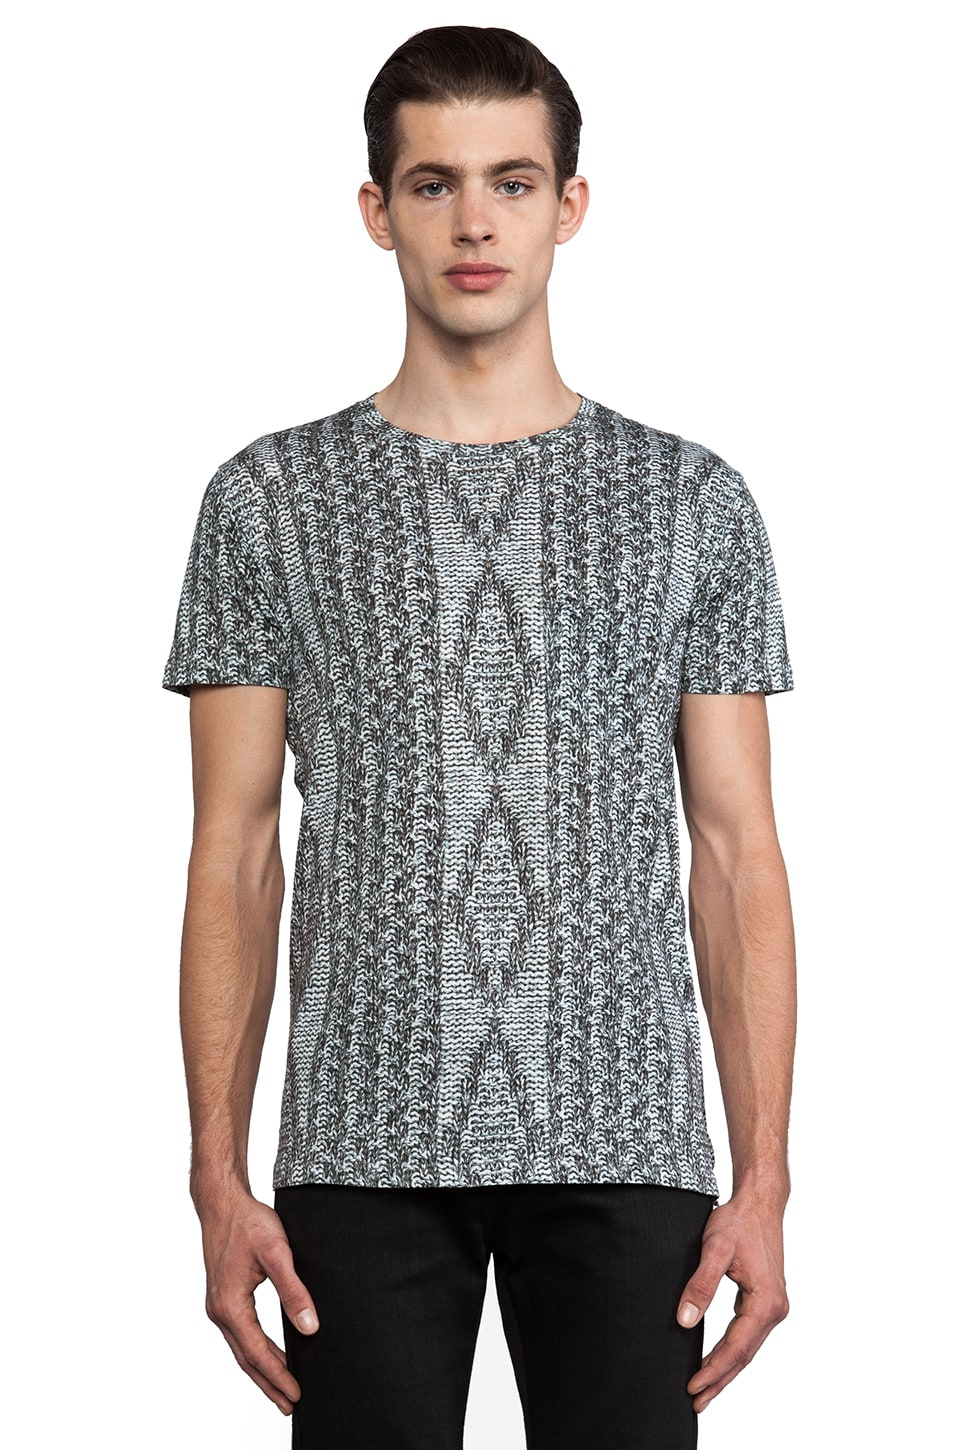 Marc by Marc Jacobs Sweater Print Tee in Greyscale Multi